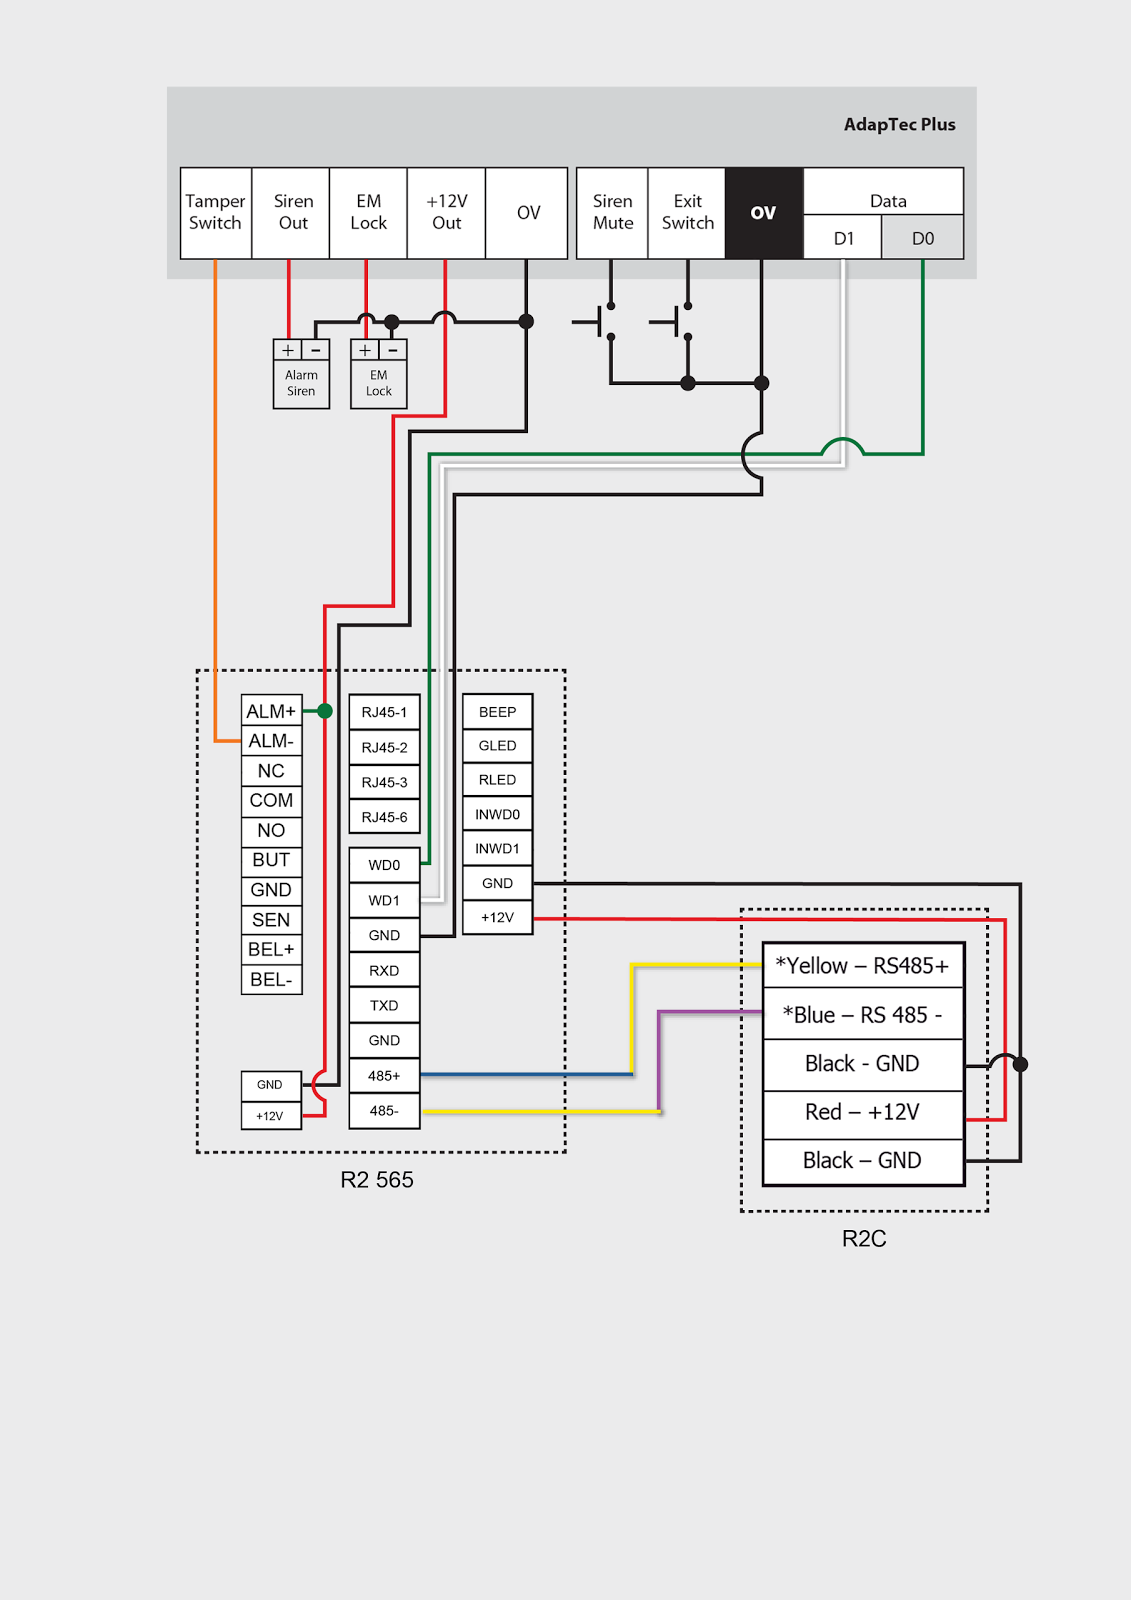 dip rotary switch wiring diagram